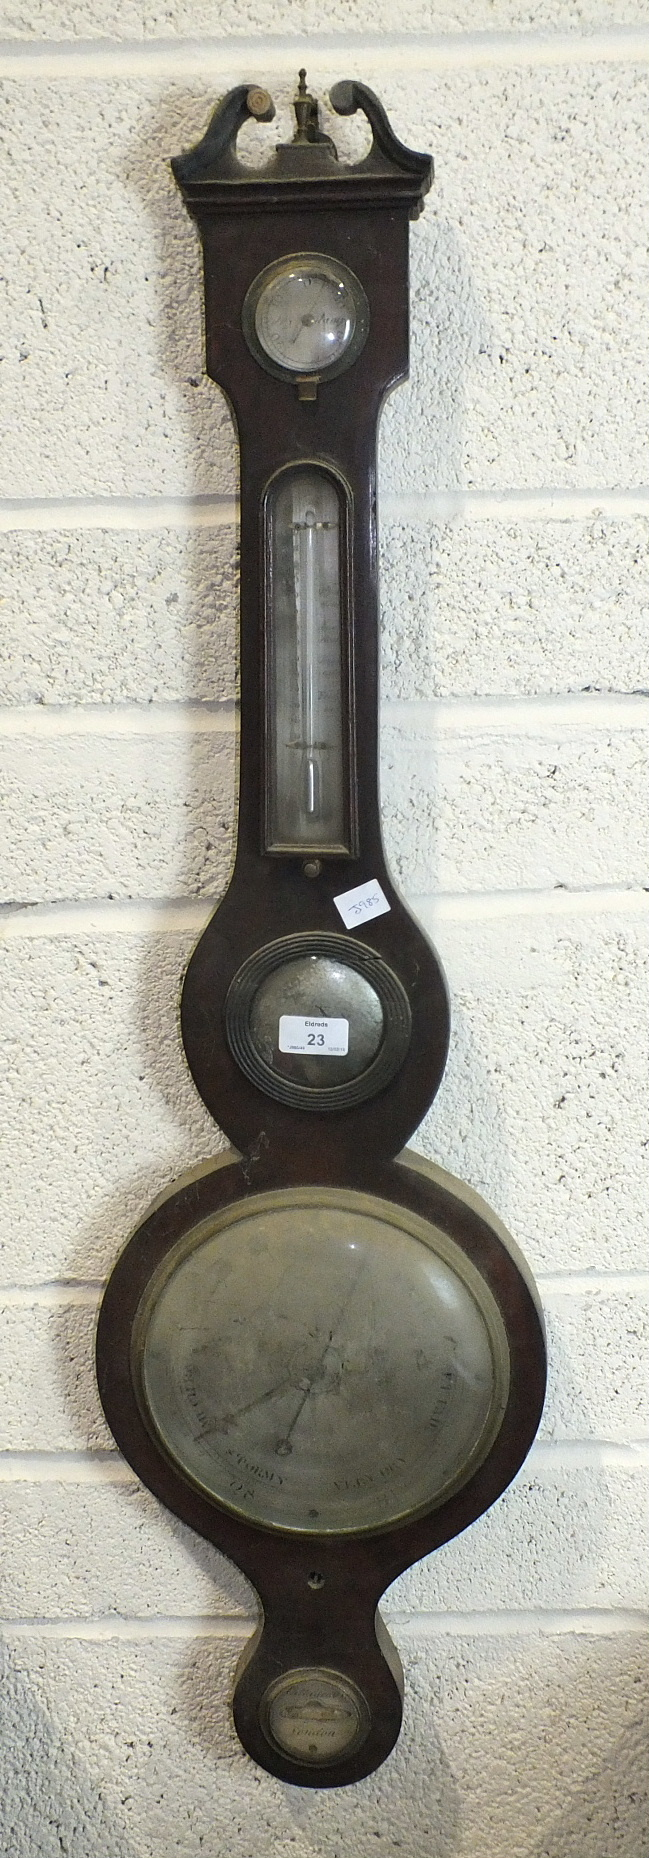 Lot 23 - A mahogany banjo barometer by P Cattaneo & Co, London, with silvered dials, dry/damp, thermometer